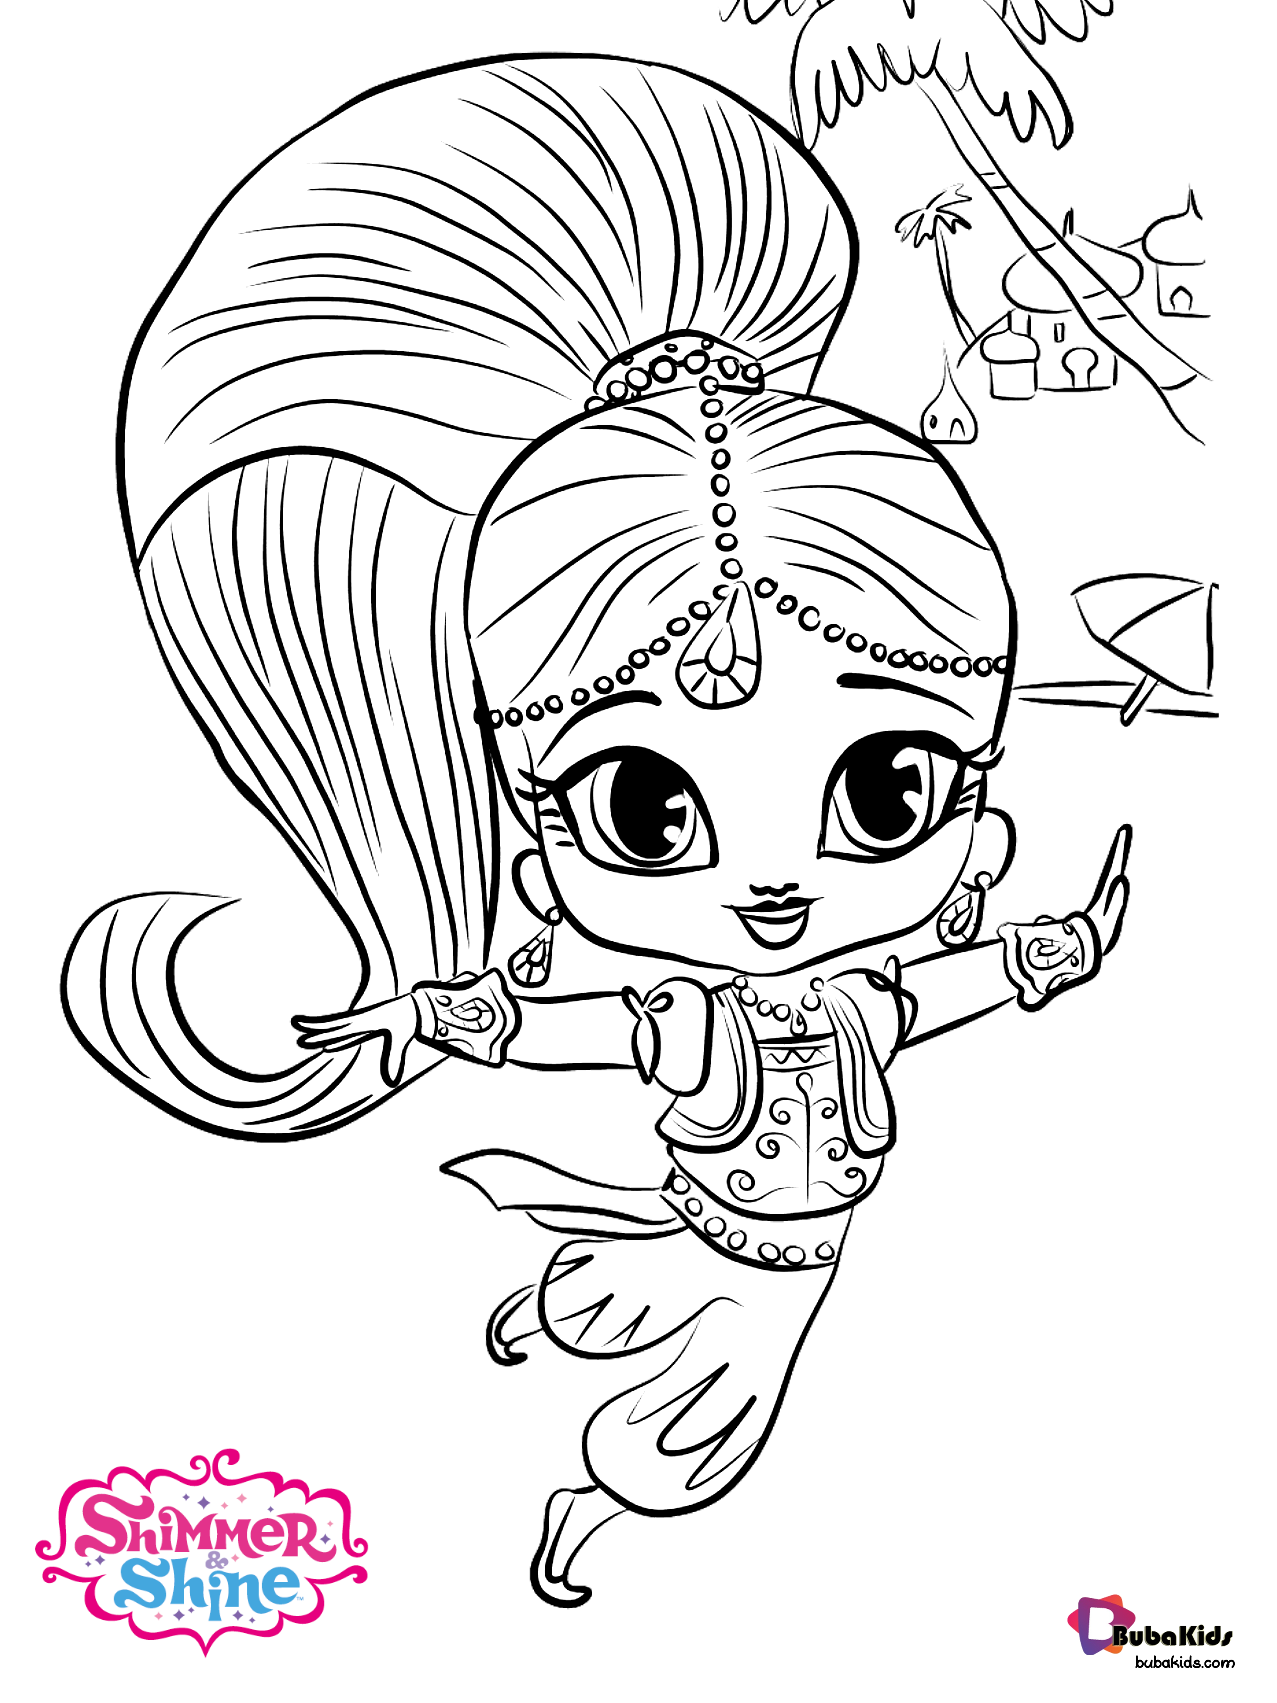 Samira Character Nick Jr Shimmer And Shine Coloring Page Collection Of Cartoon Coloring Pages For Te In 2020 Coloring Pages Cartoon Coloring Pages Poppy Coloring Page